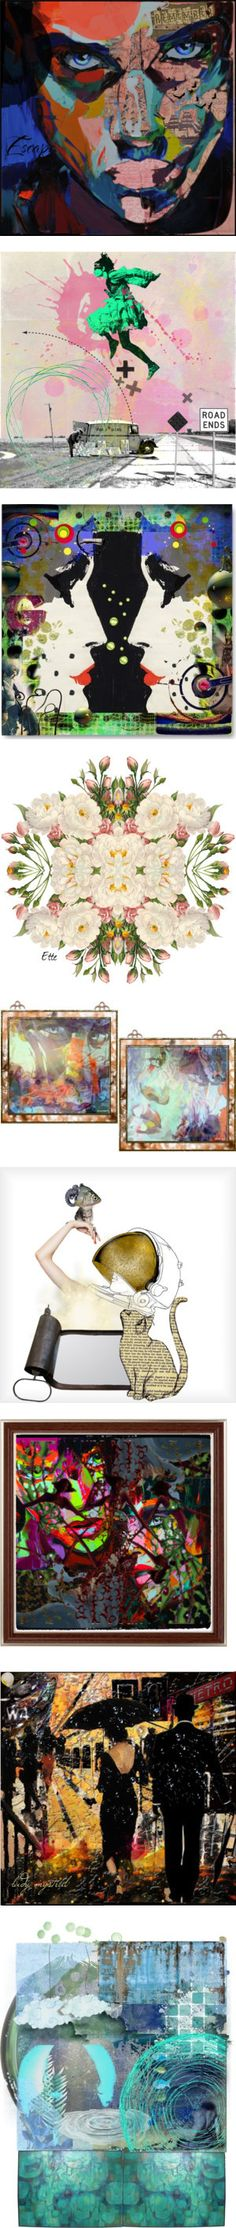 """""""Top Art & Expression Sets for Jan 30th, 2013"""" by polyvore ❤ liked on Polyvore"""